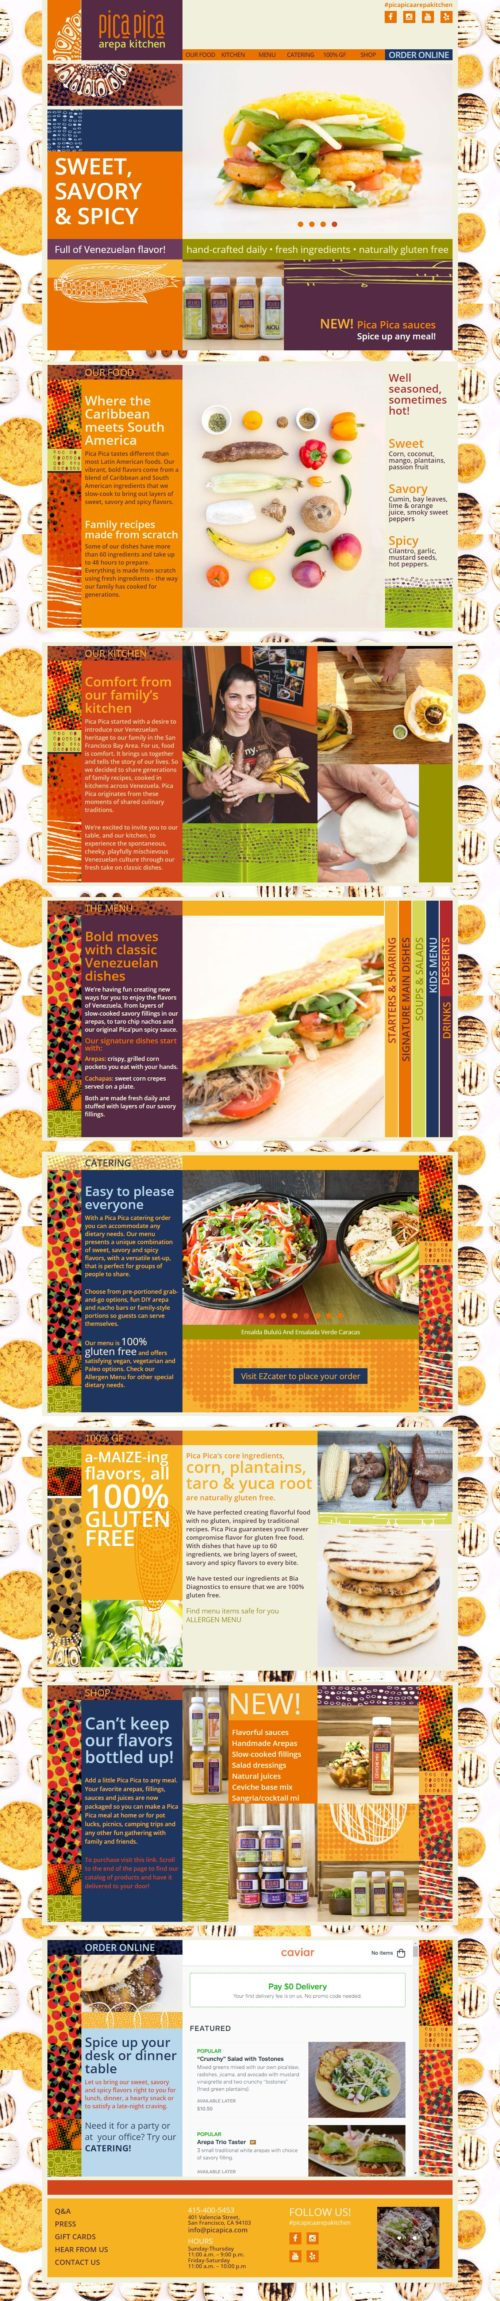 Pica Pica | Venezuelan food's website developed for Wordpress. 2019 update to a single infinite scroll page, responsive with bootstrap and sass